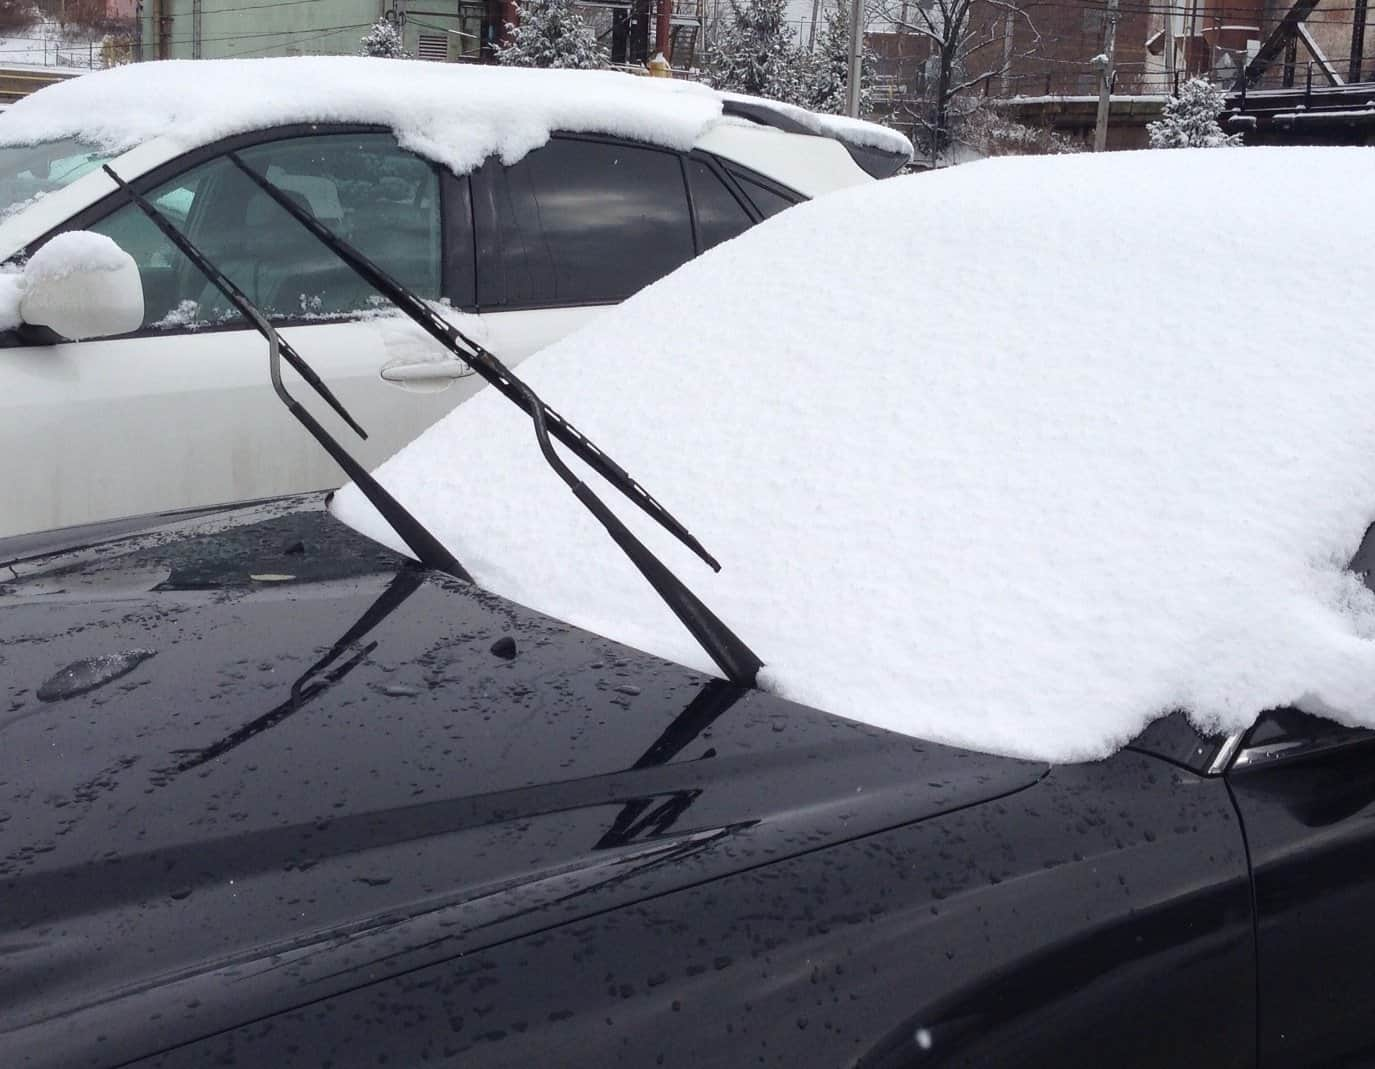 Keep an eye on your windsheild wipers and fluid all winter